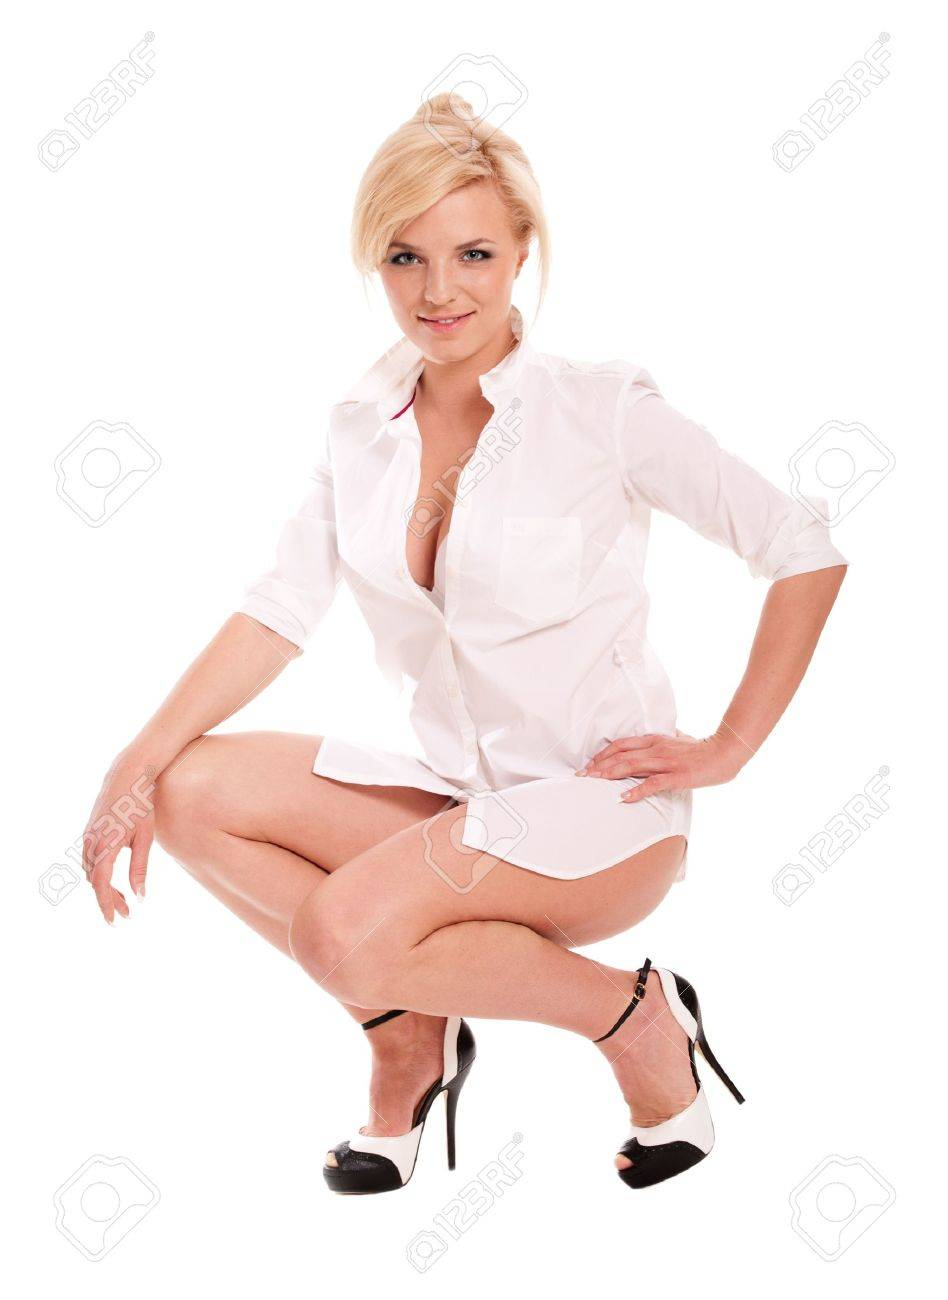 Sexy Blonde Woman In White Shirt On Heels Isolated On White Stock ...